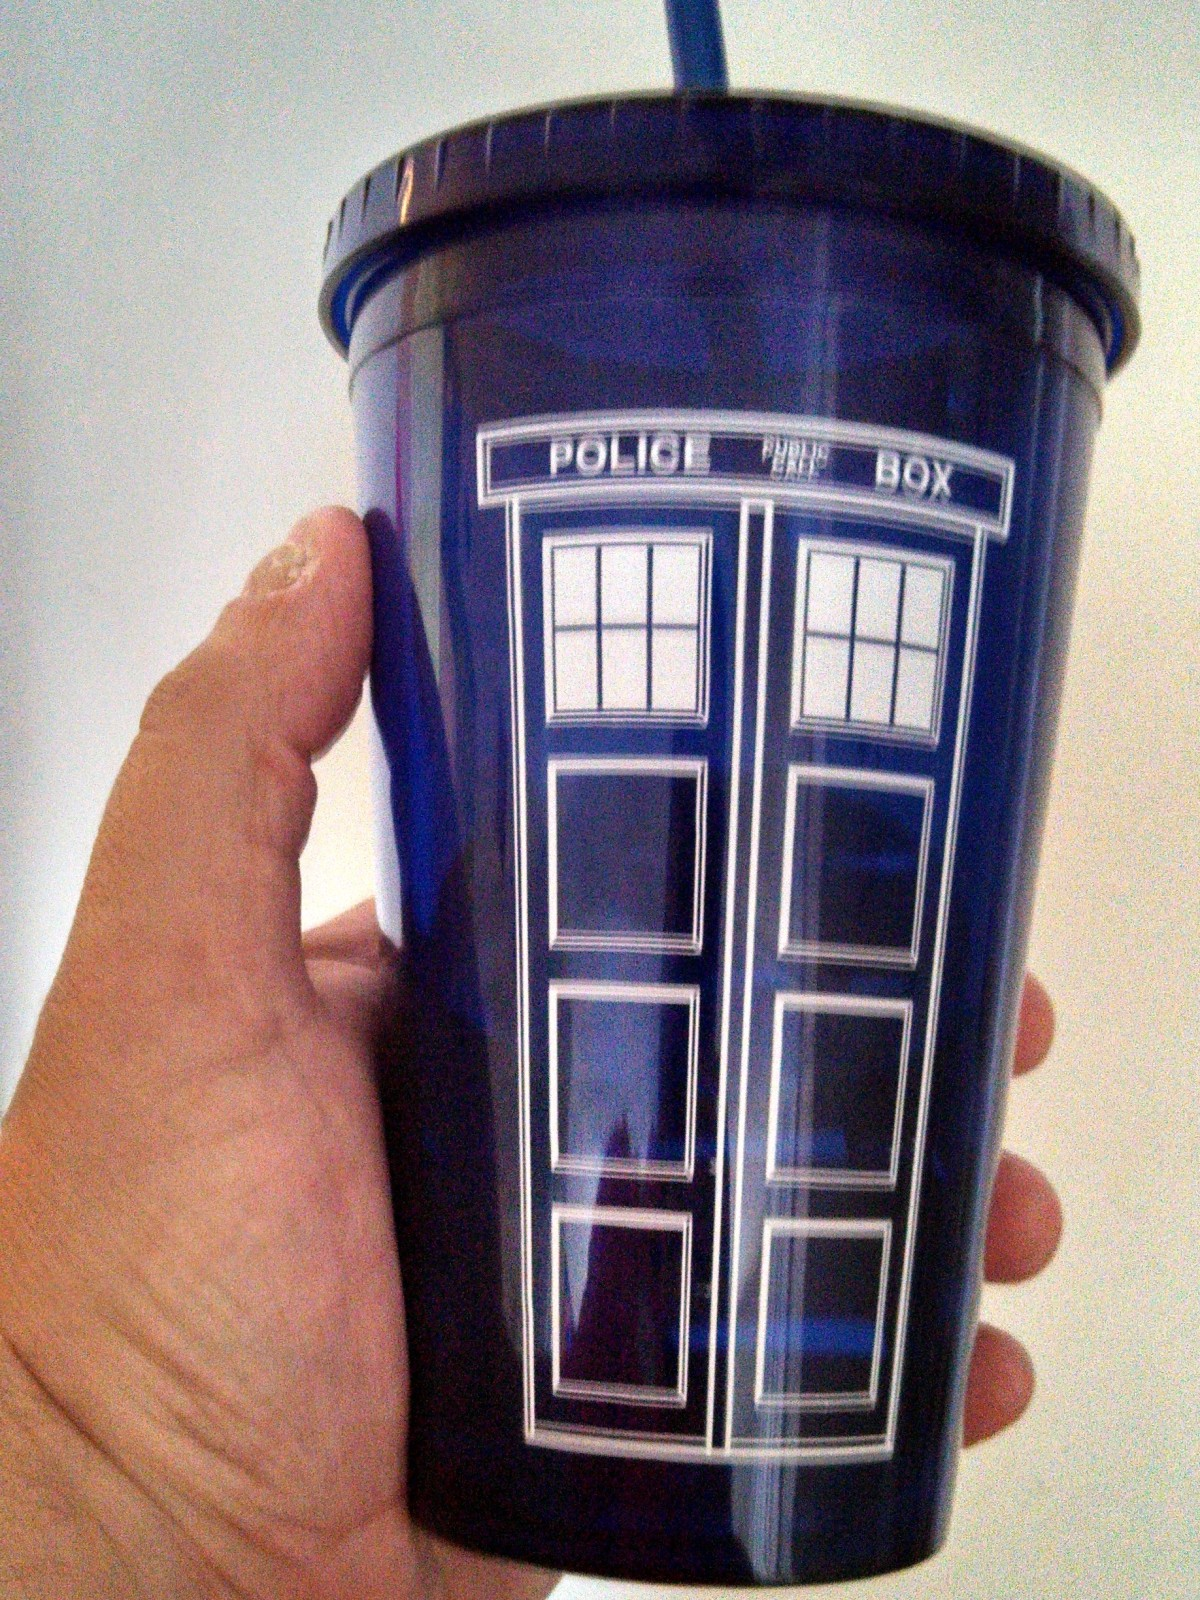 Unfortunately, it's not bigger on the inside. #Whovians